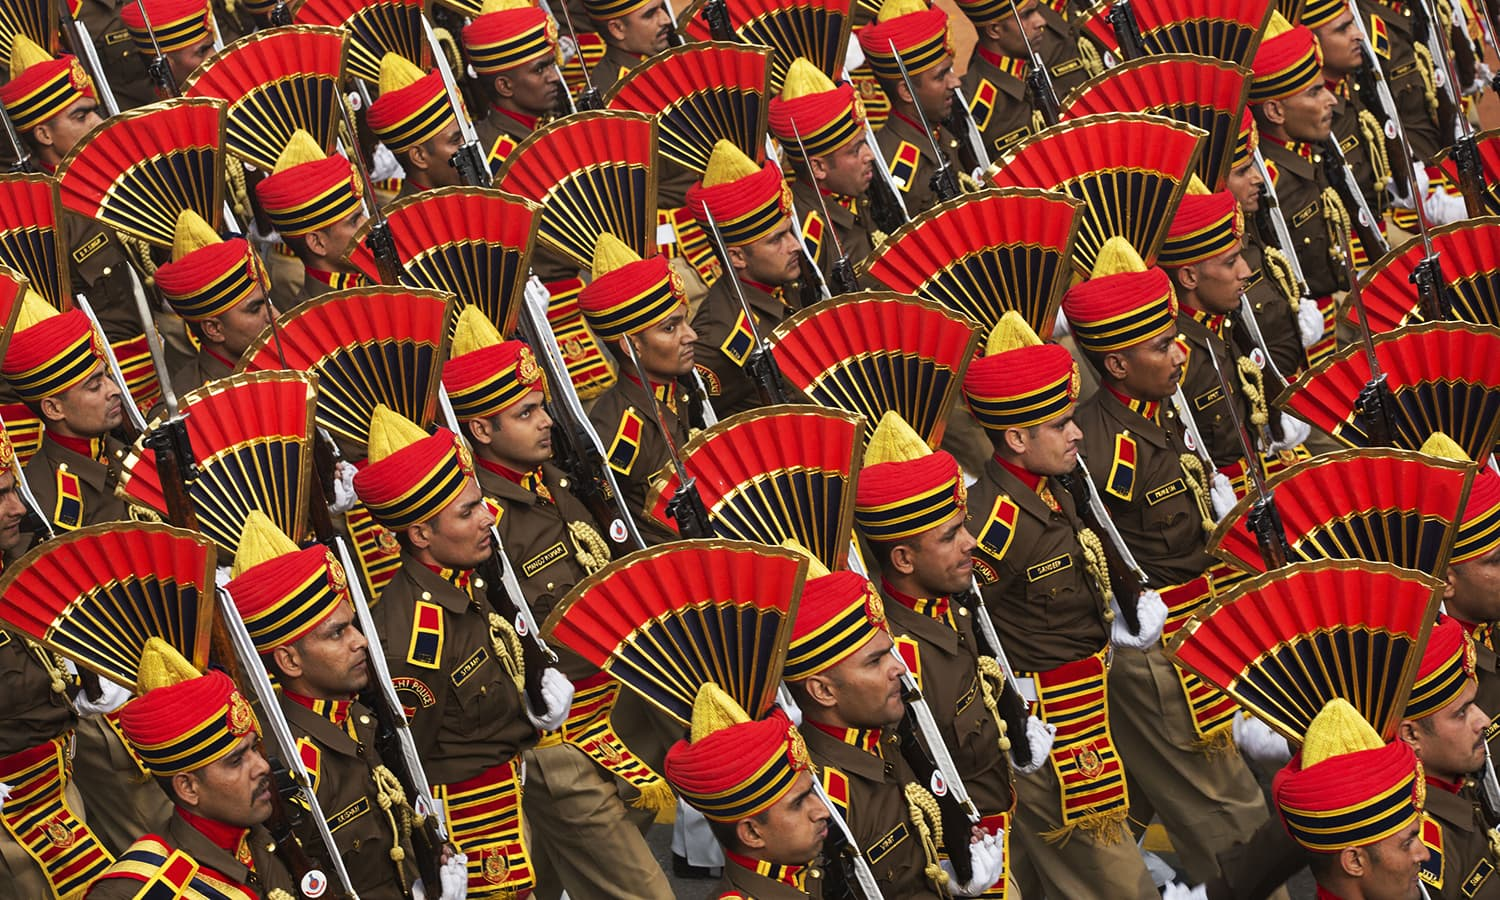 Indian security forces march during the Republic Day parade. ─ AP